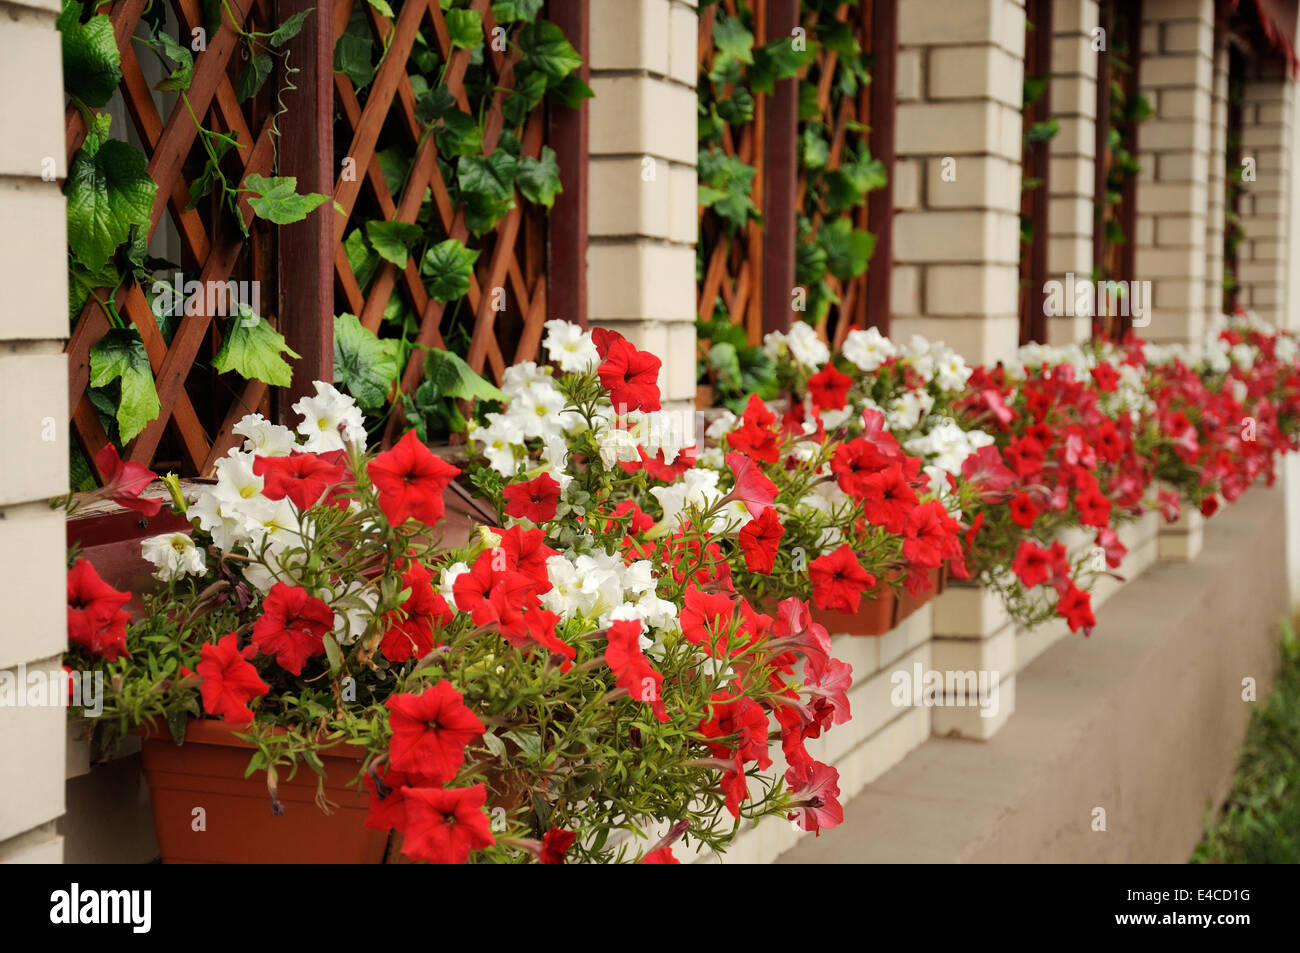 The facade is decorated with petunias - Stock Image